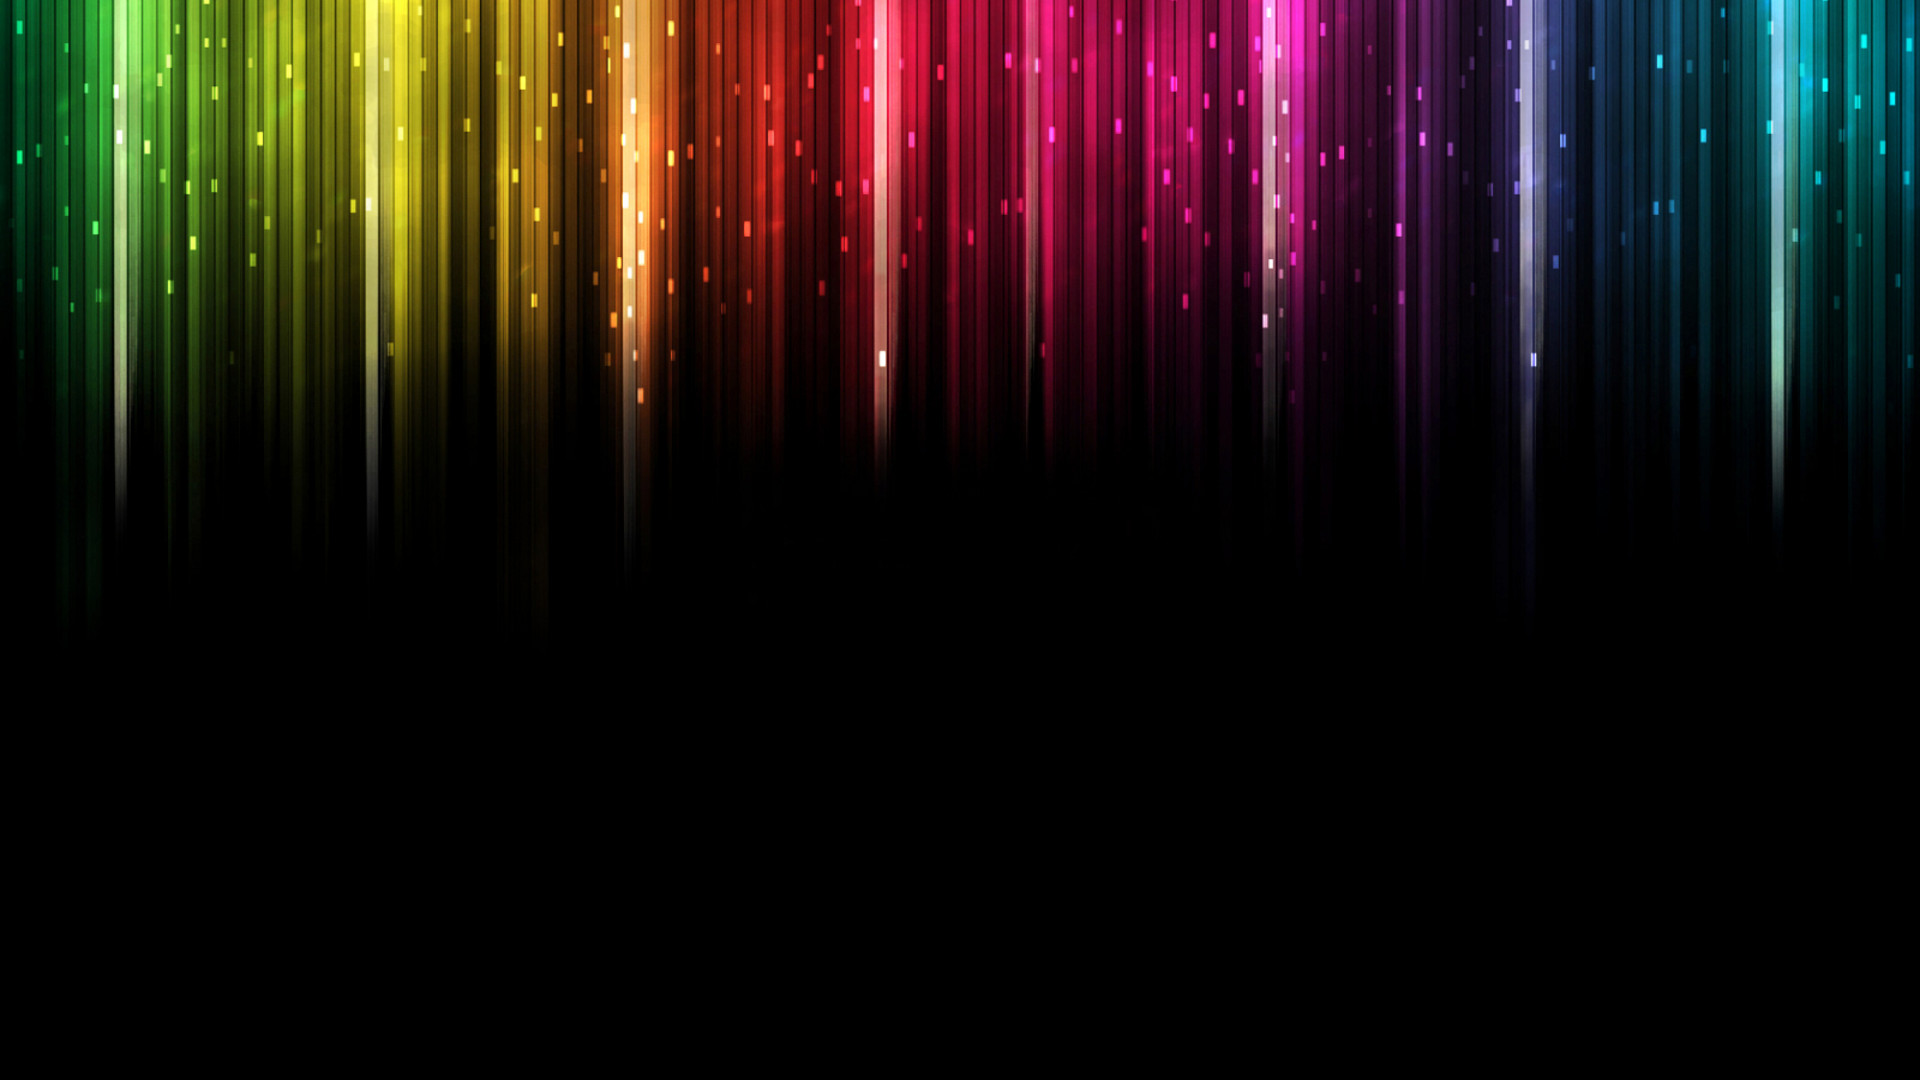 Cool Colors Wallpapers : Find best latest Cool Colors Wallpapers in HD for  your PC desktop background & mobile phones.